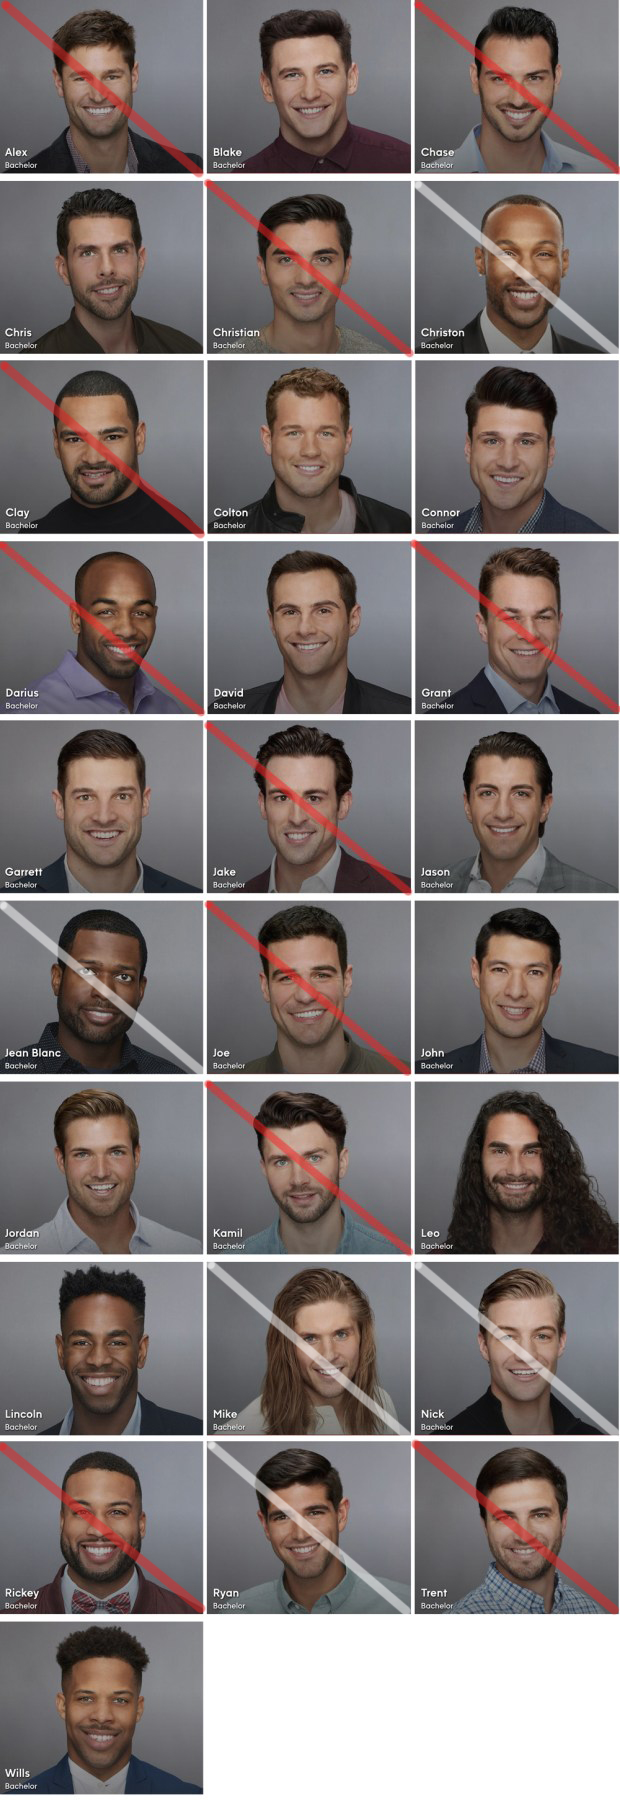 Week 4's eliminated suitors are marked in white and those from previous weeks in red.